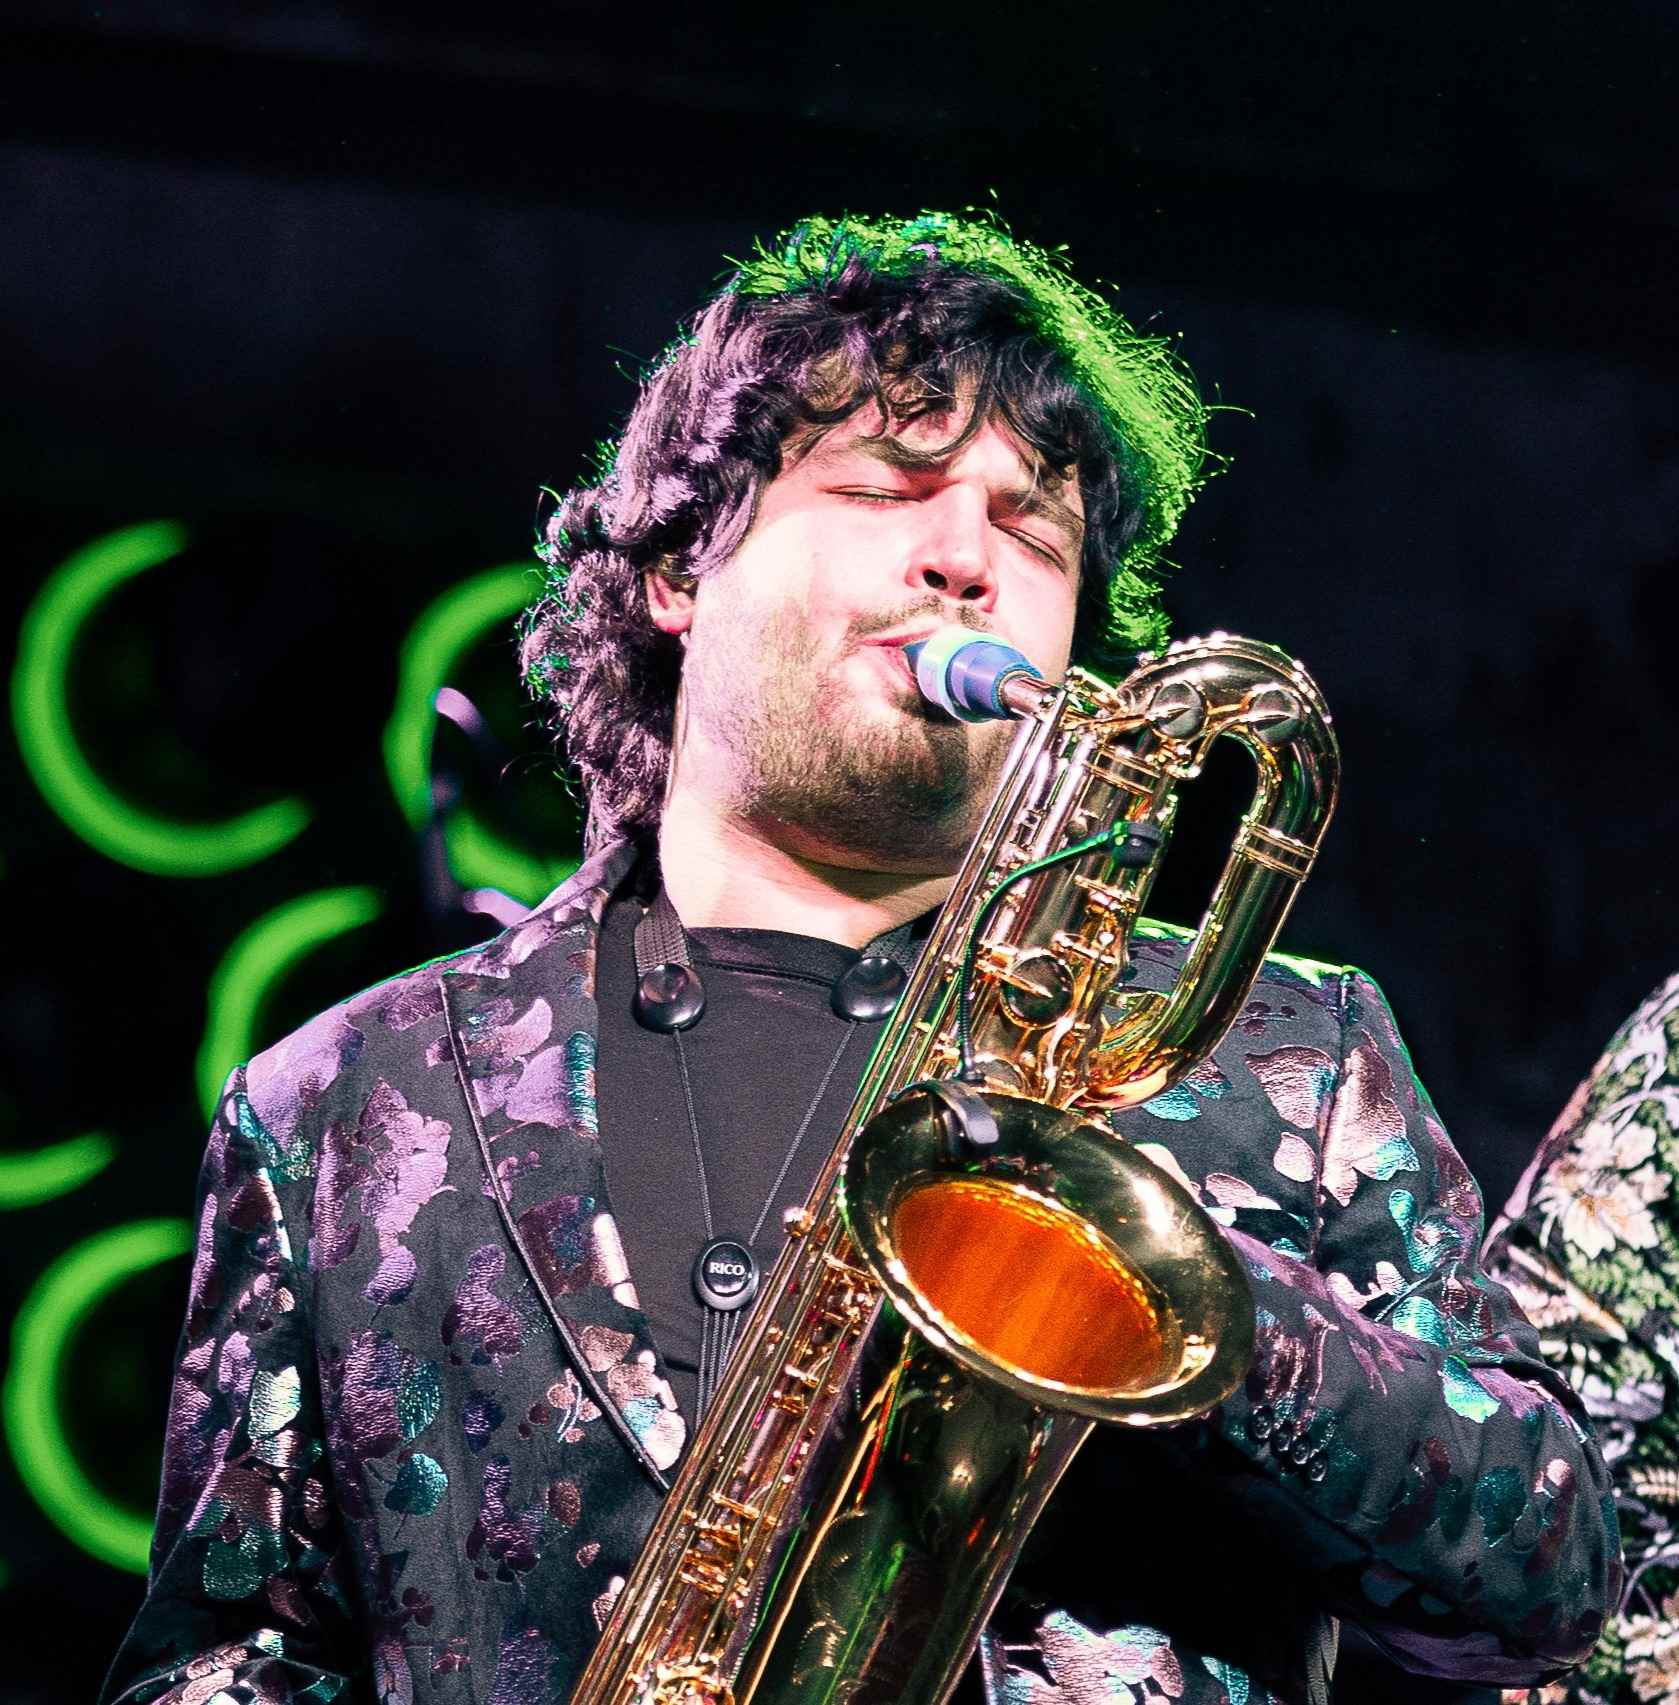 Adrian Condis plays a Syos mouthpiece on baritone saxophone